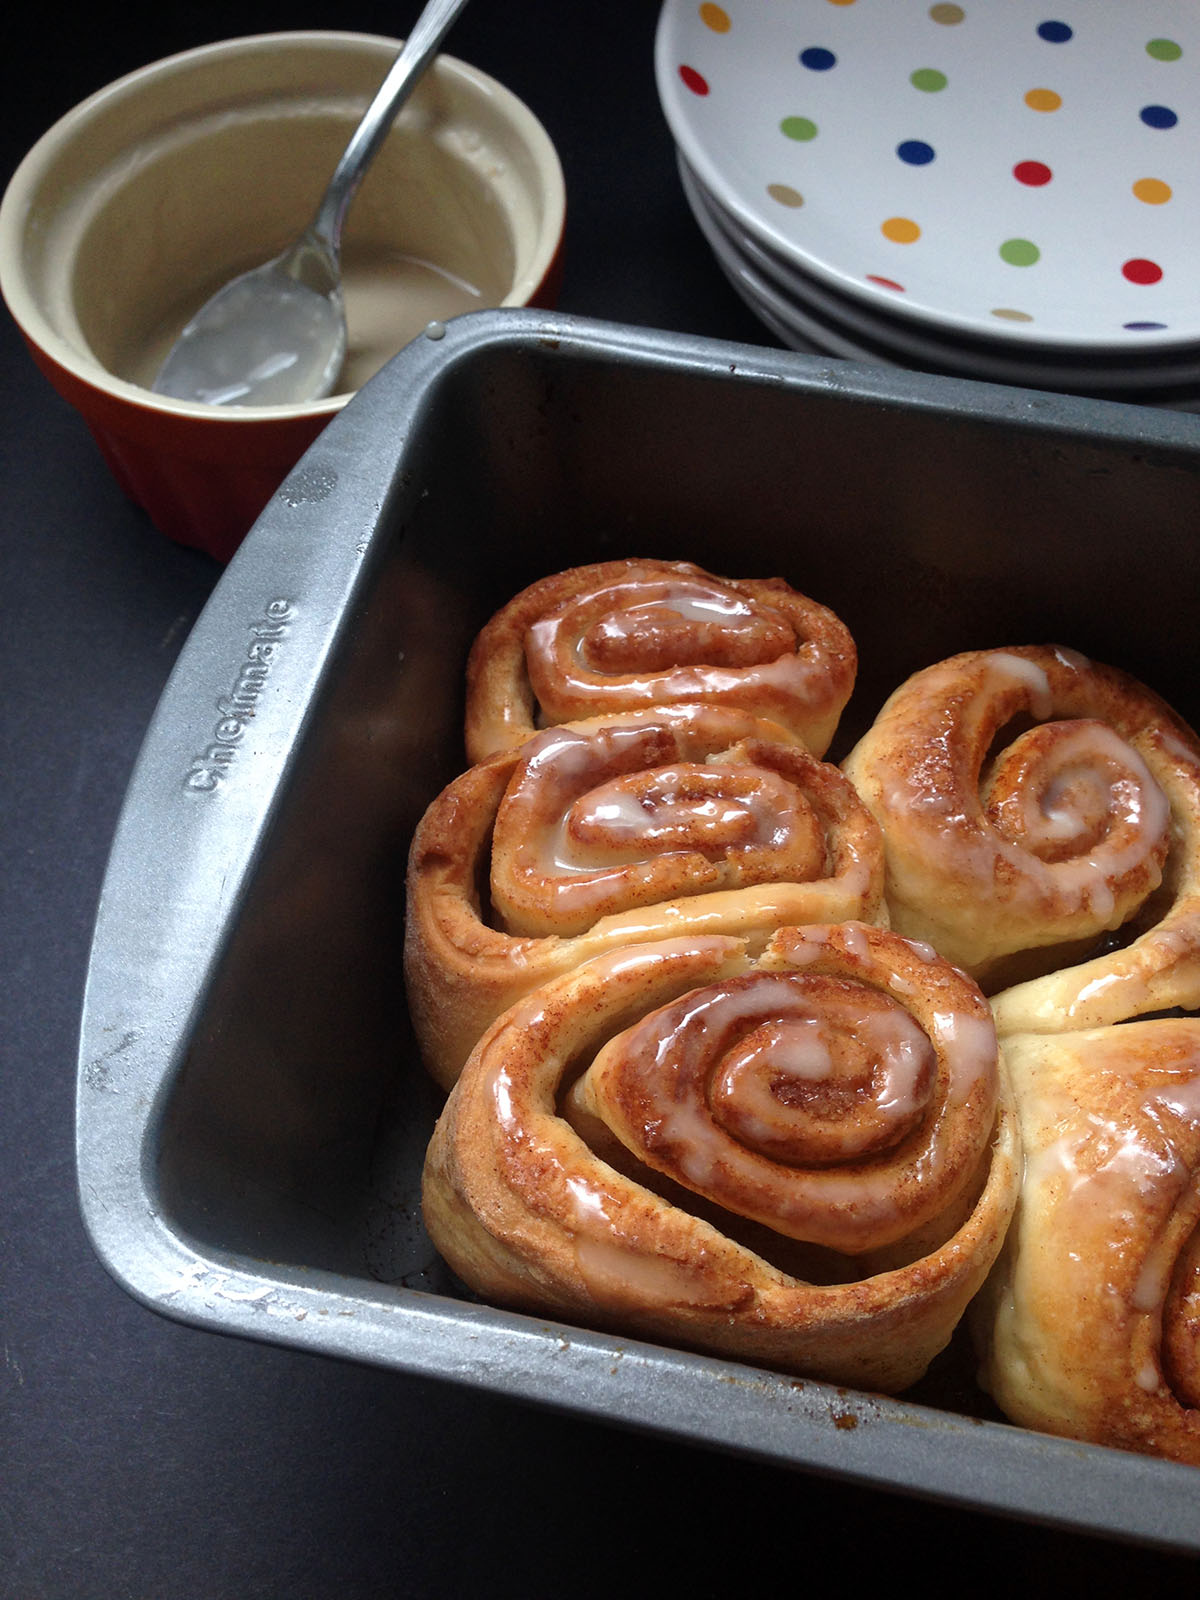 how to make cinnamon rolls from pizza dough